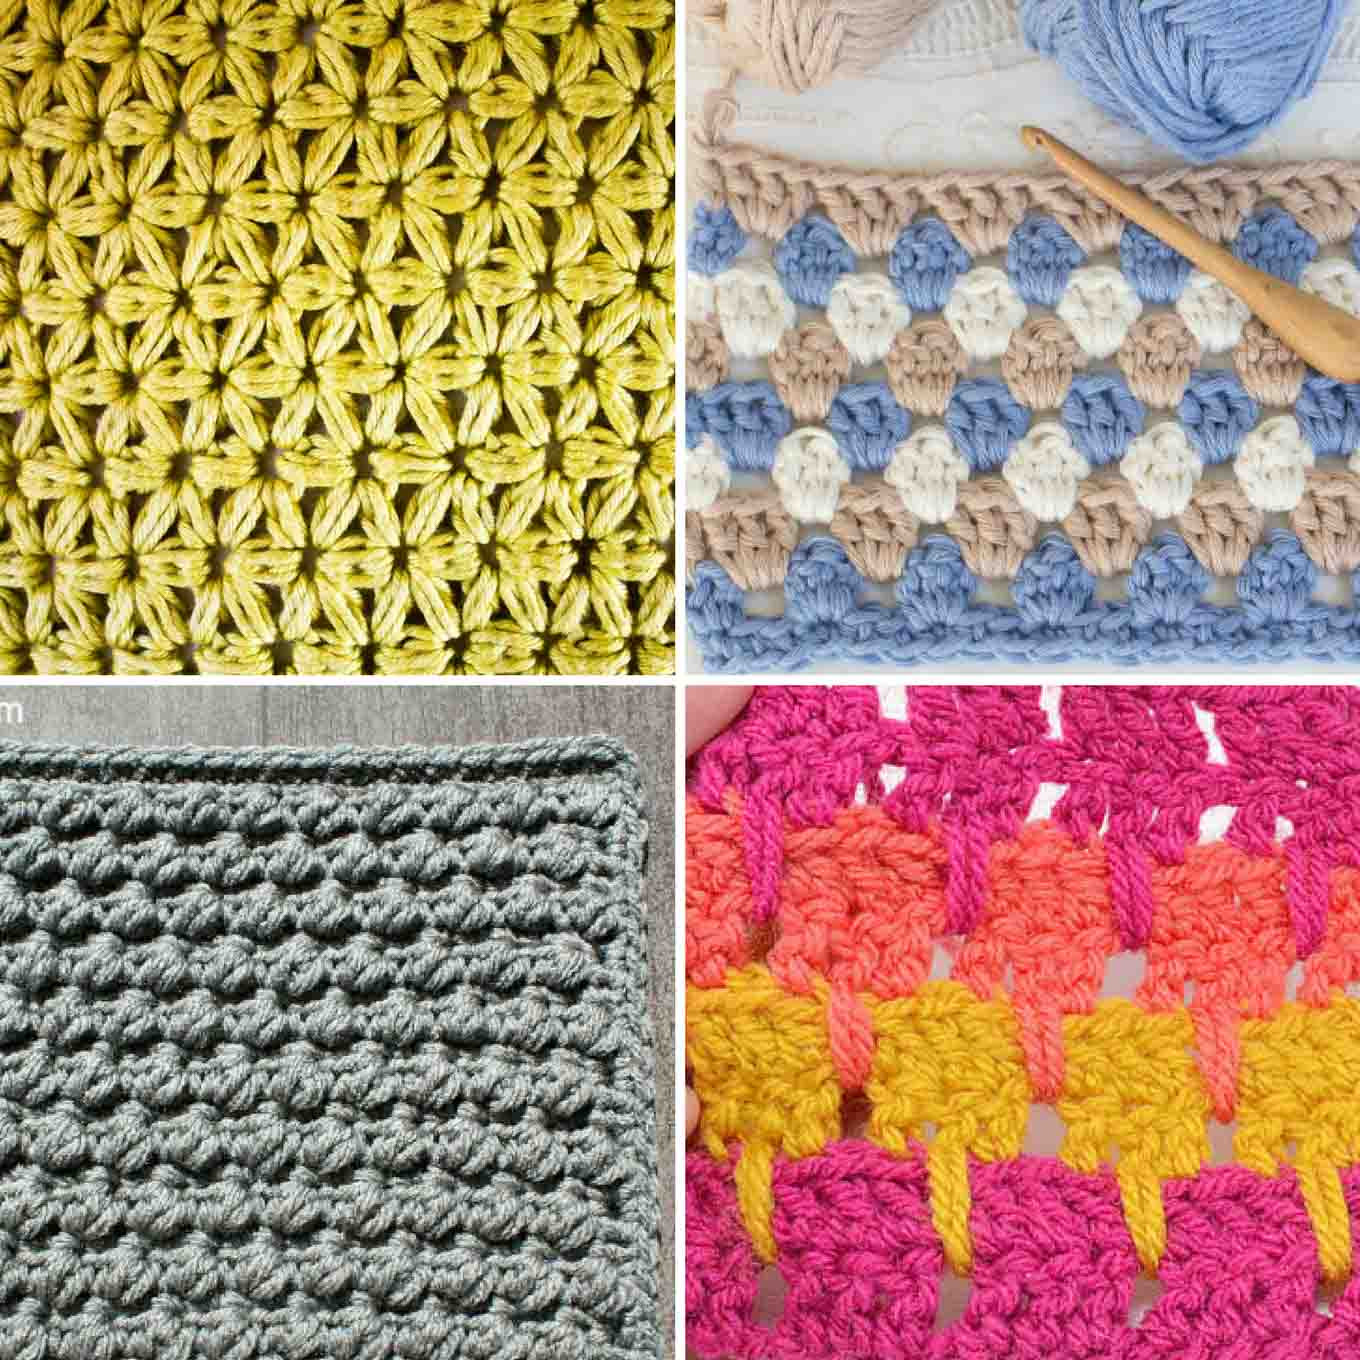 Crochet Afghan Patterns Elegant 25 Crochet Stitches for Blankets and Afghans Make & Do Crew Of New 40 Pics Crochet Afghan Patterns